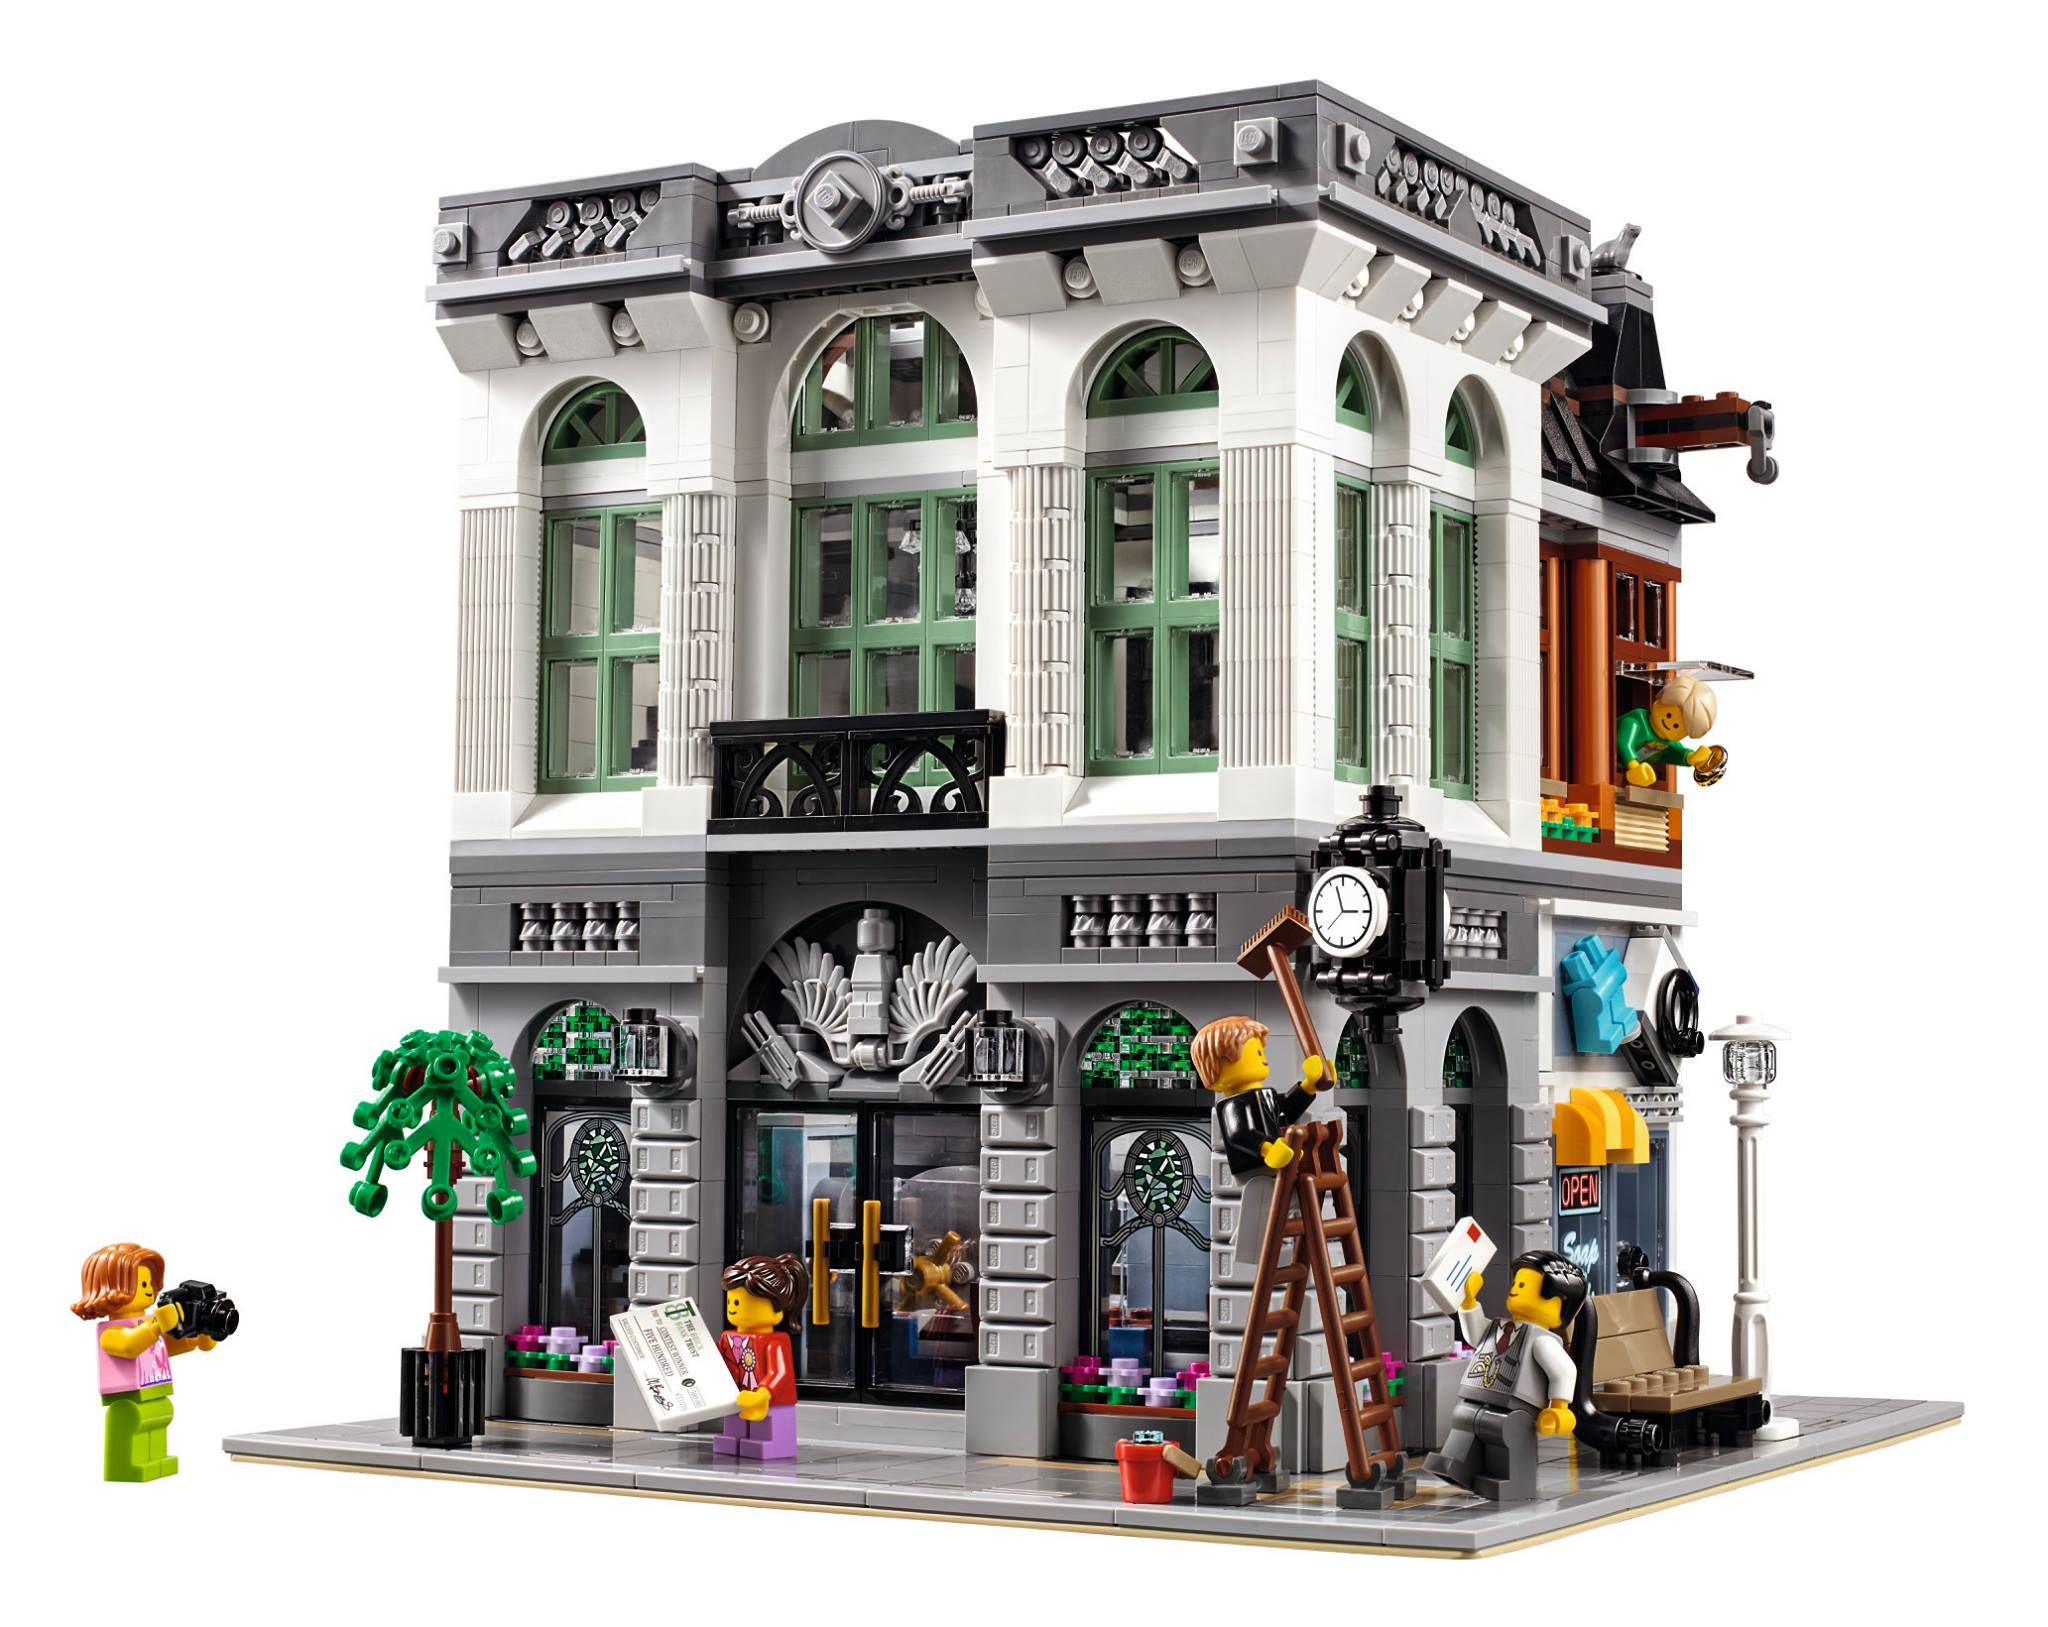 Lego modular bank laundromat for january 2016 release set 10251 all information known